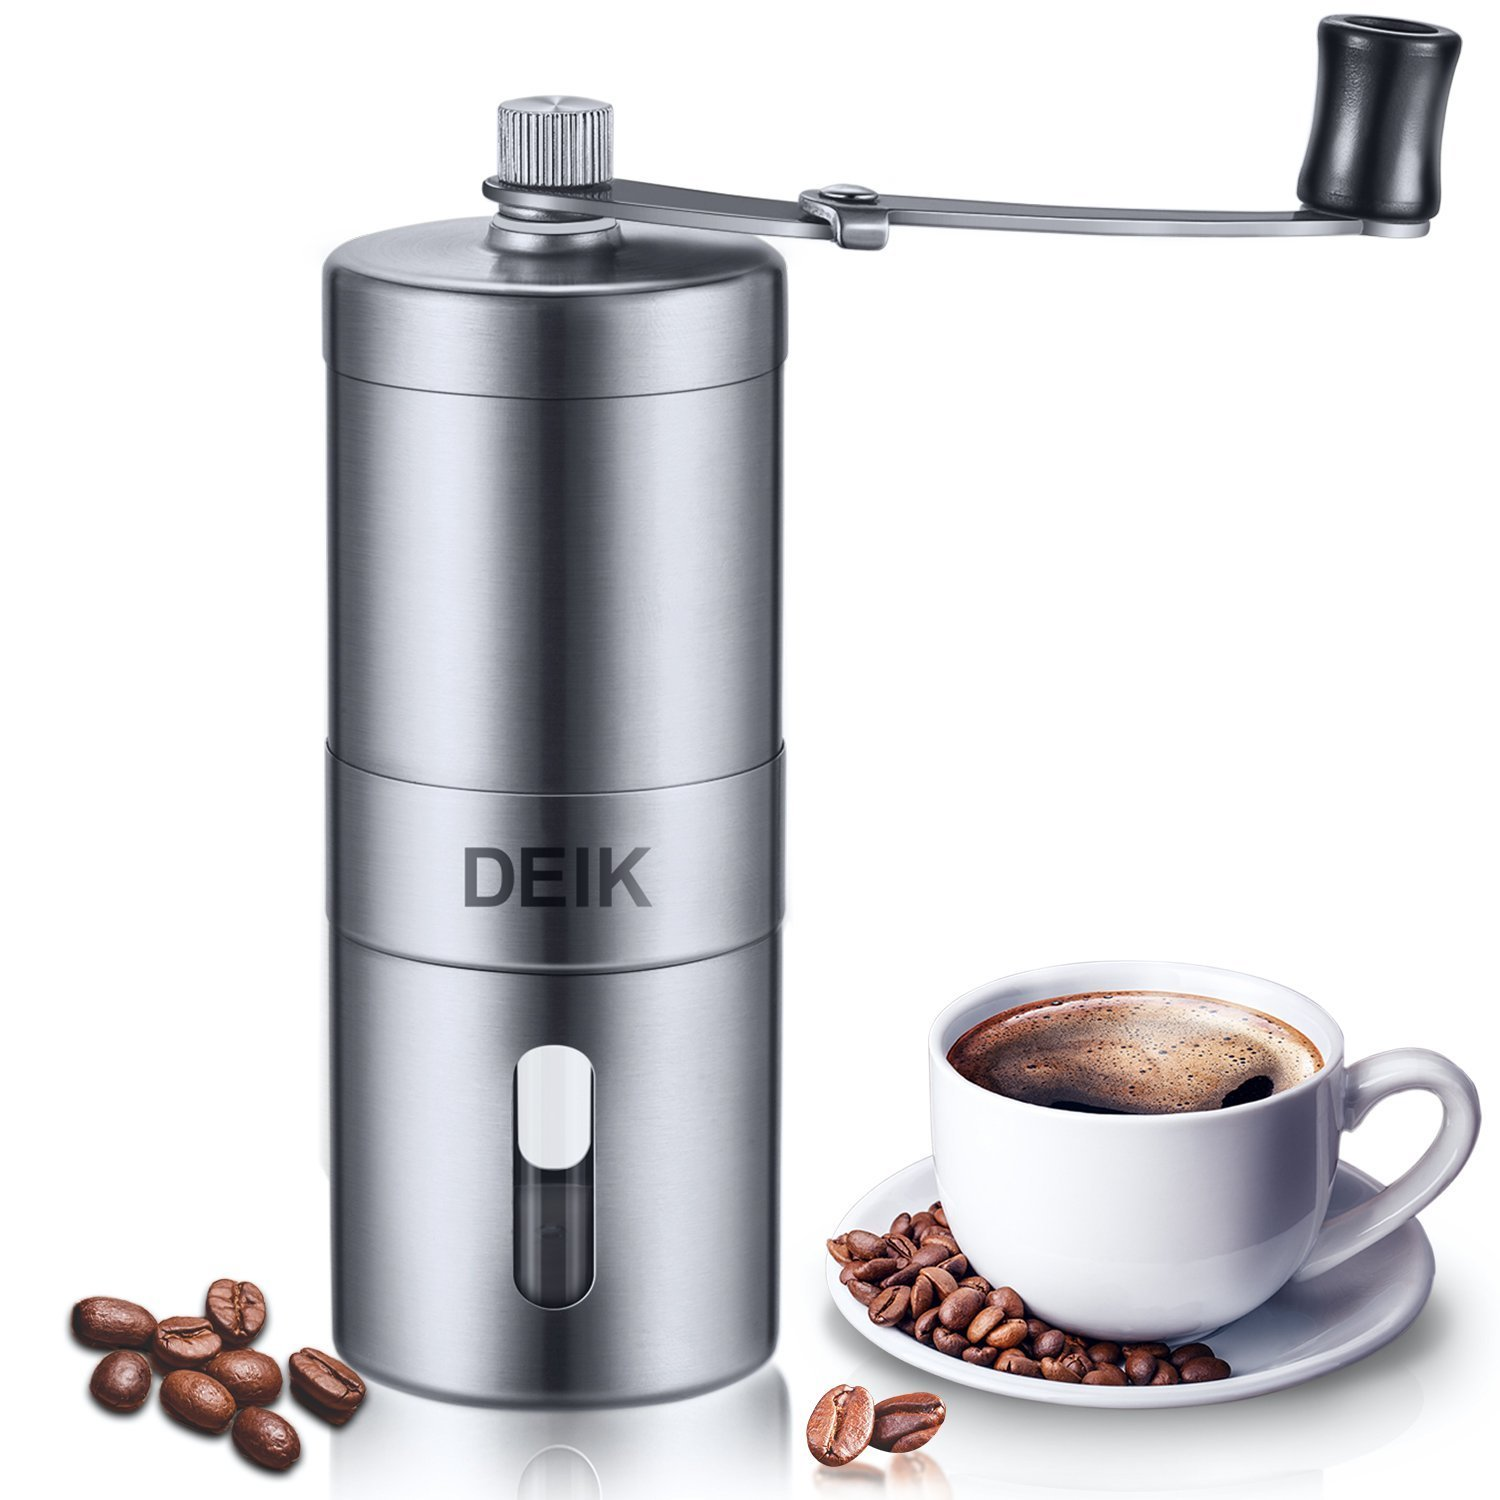 Coffee Grinder Deik, Espresso Coffee Bean Grinder, Portable Stainless Steel Grinder Manual, Best Conical Burr for Precision Brewing, Adjustable Salt Pepper Mill Grinds Beans Spices Brushed